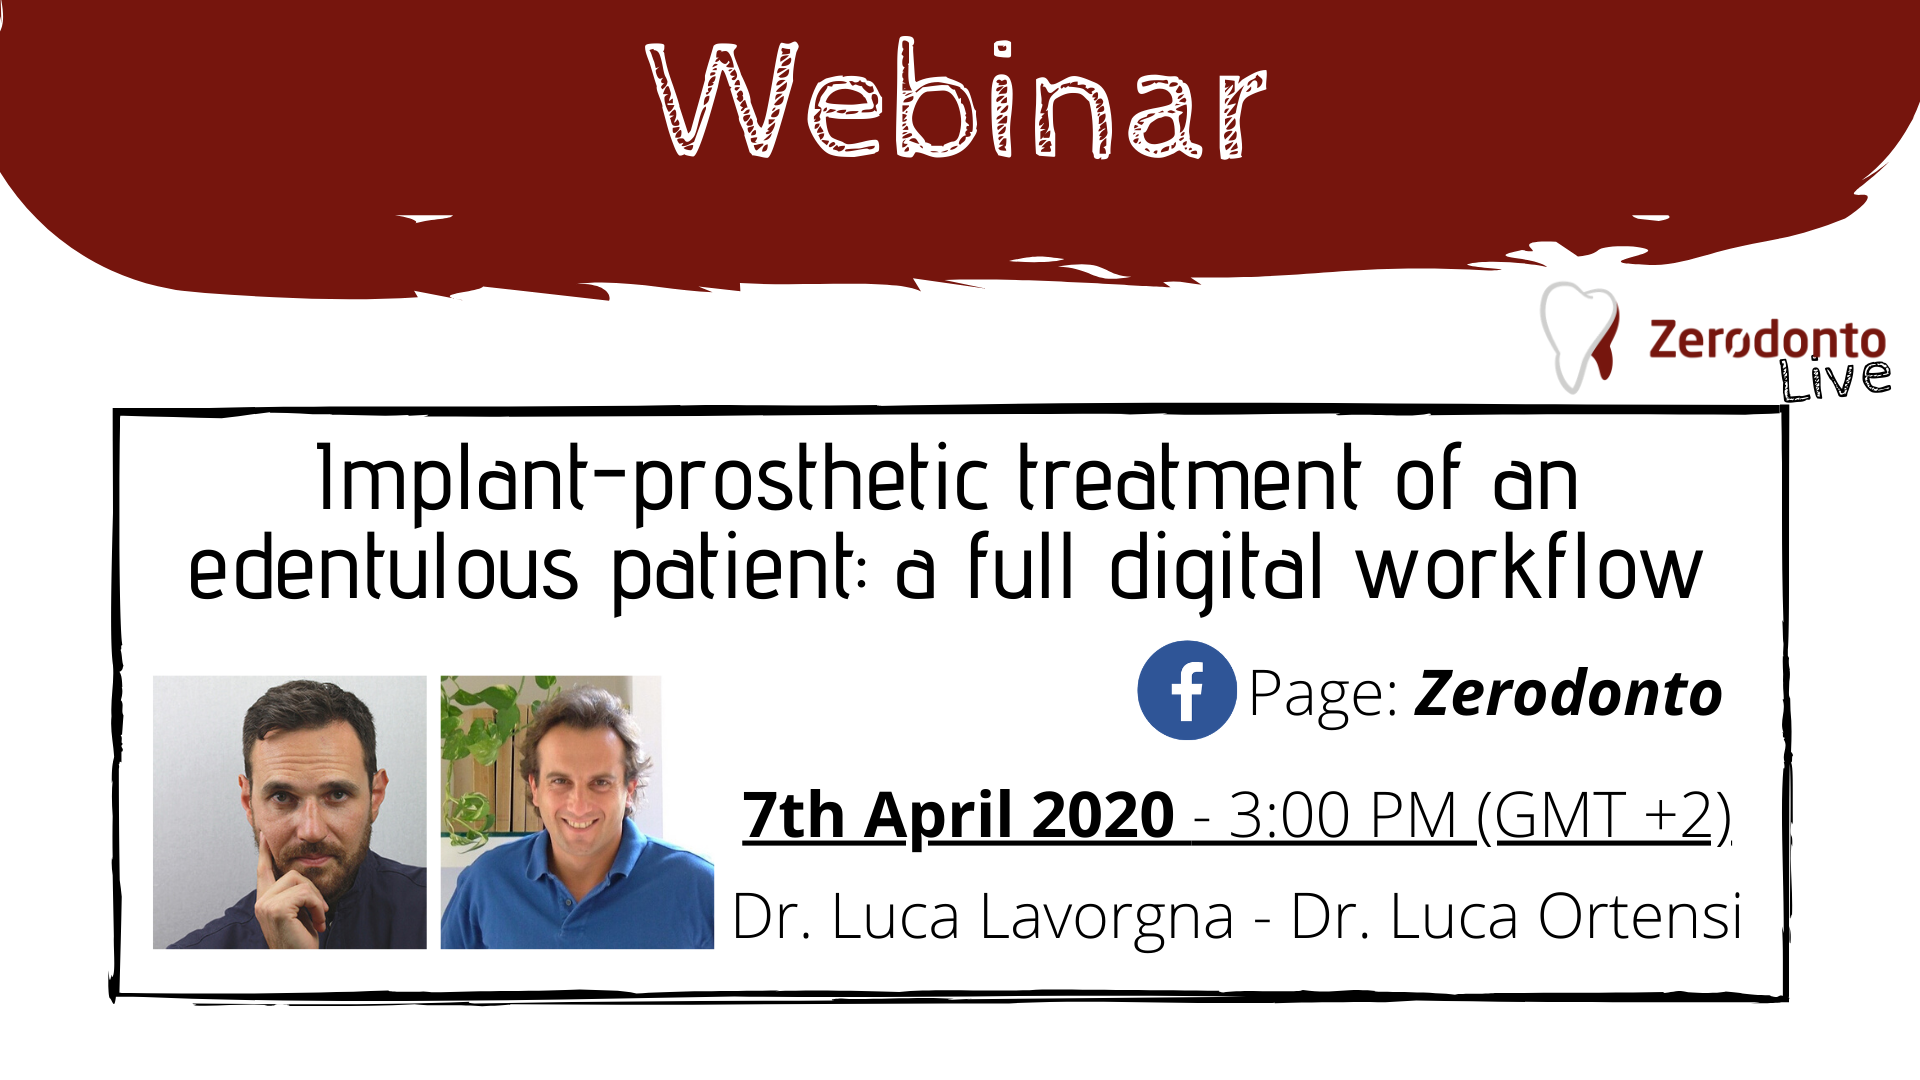 Implant-prosthetic treatment of an edentulous patient: a full digital workflow